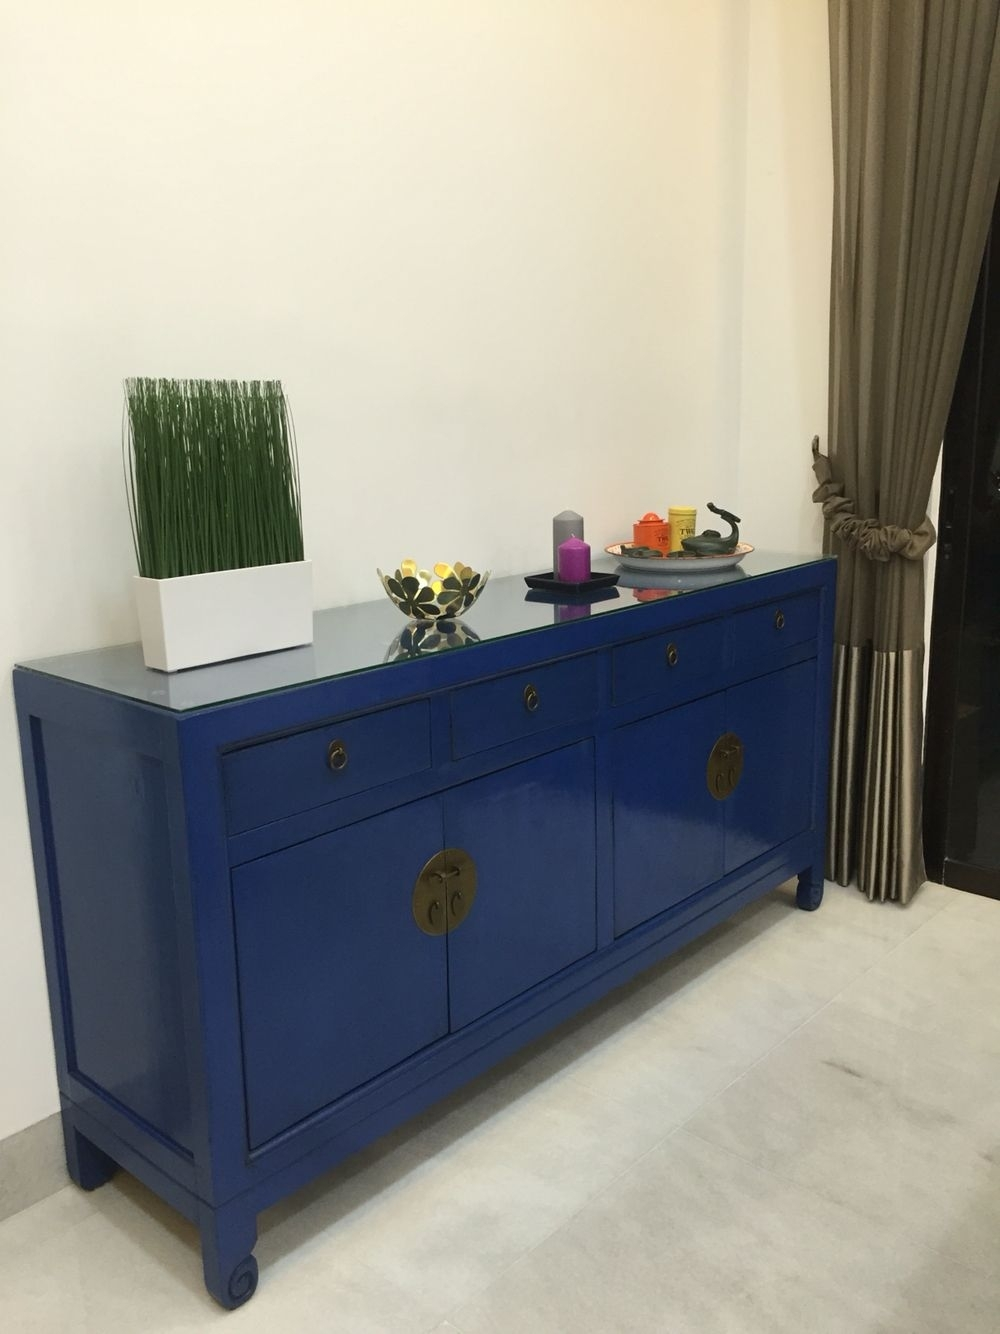 Cobalt/ Royal Blue Sideboard With Antique Chinese Elements For My in Blue Stone Light Rustic Black Sideboards (Image 13 of 30)